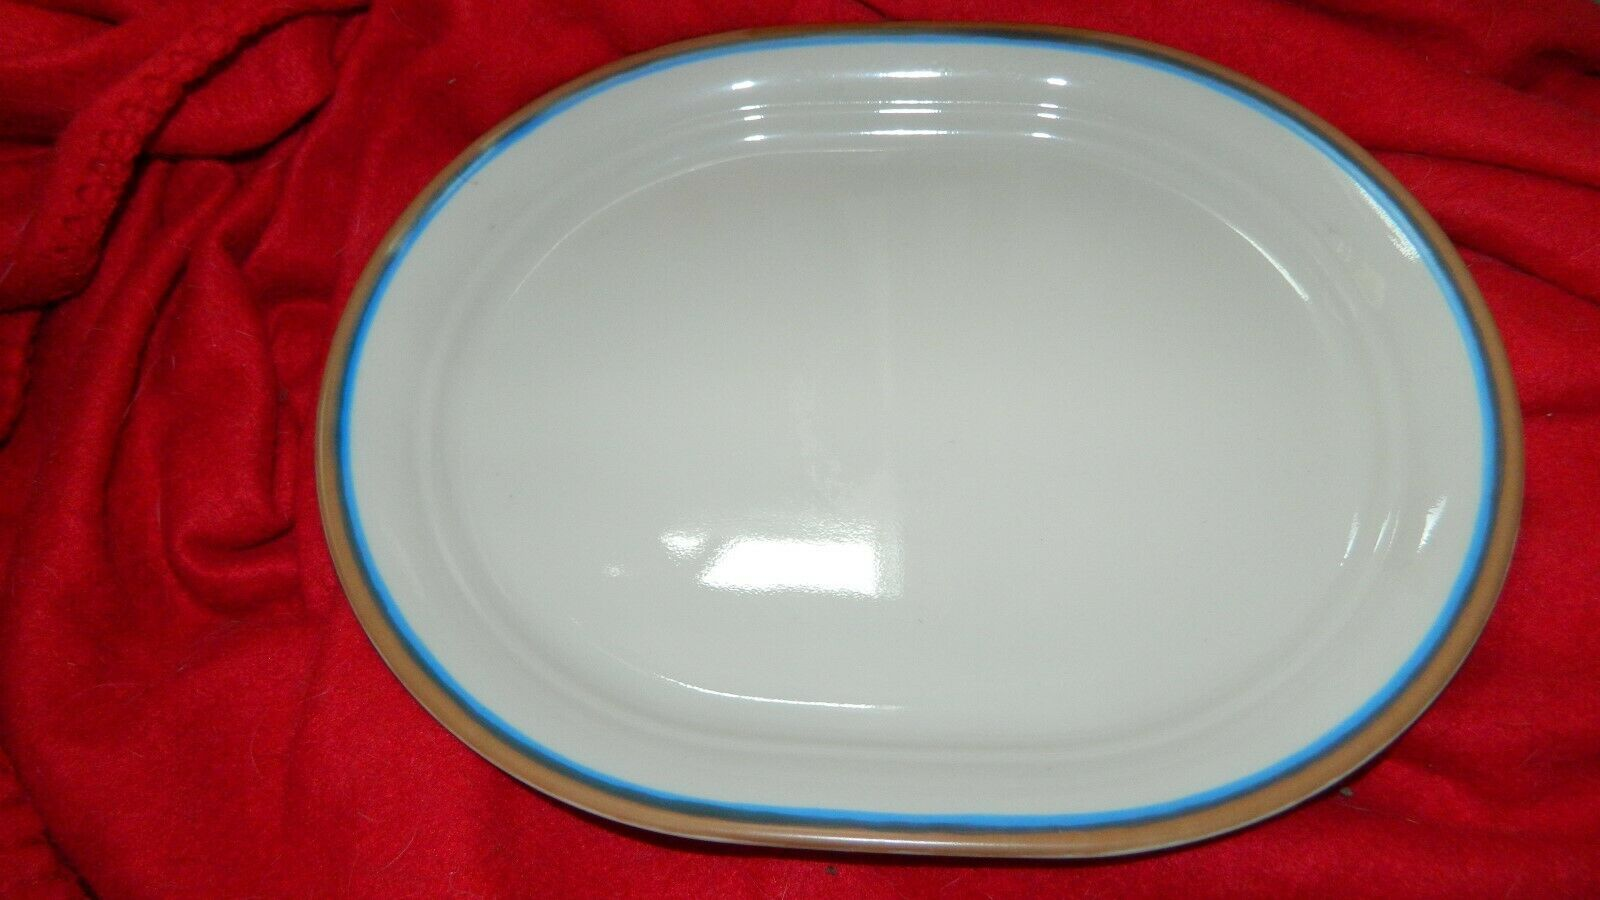 Primary image for CORELLE CORNERSTONE BAYSCAPE? UNKNOWN PATTERN OVAL SERVING PLATTER FREE USA SHIP